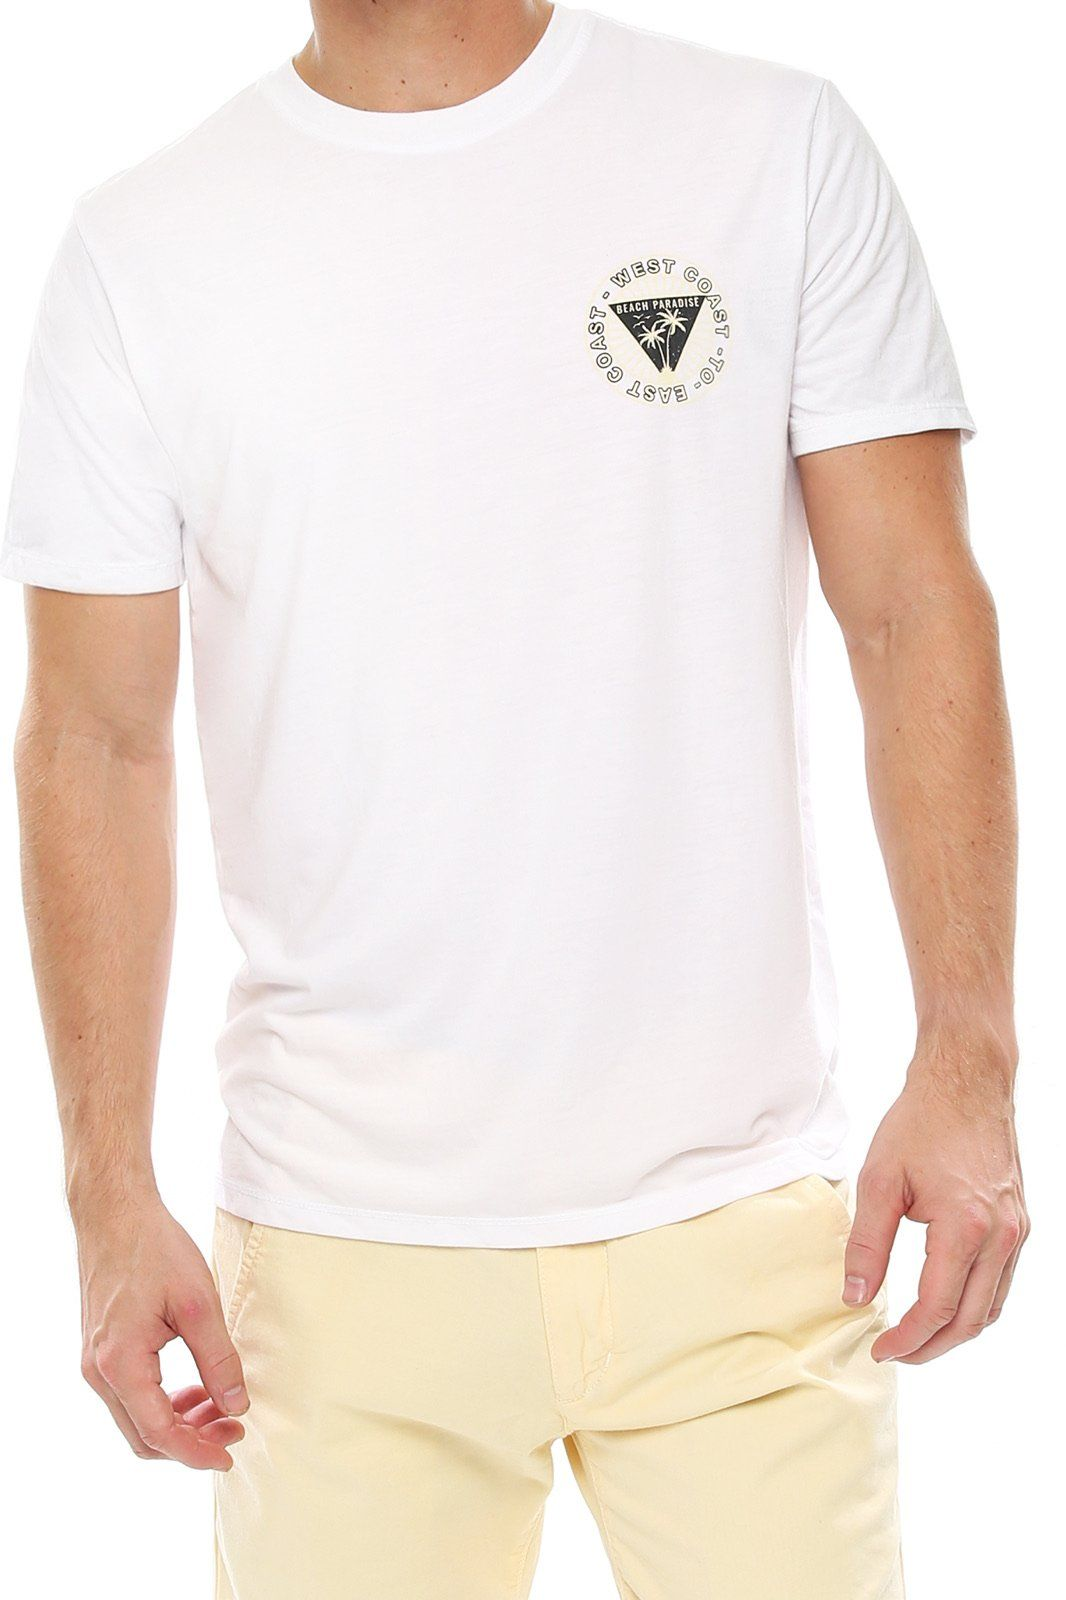 Men's Graphic Crew Tee - East to West - Shore